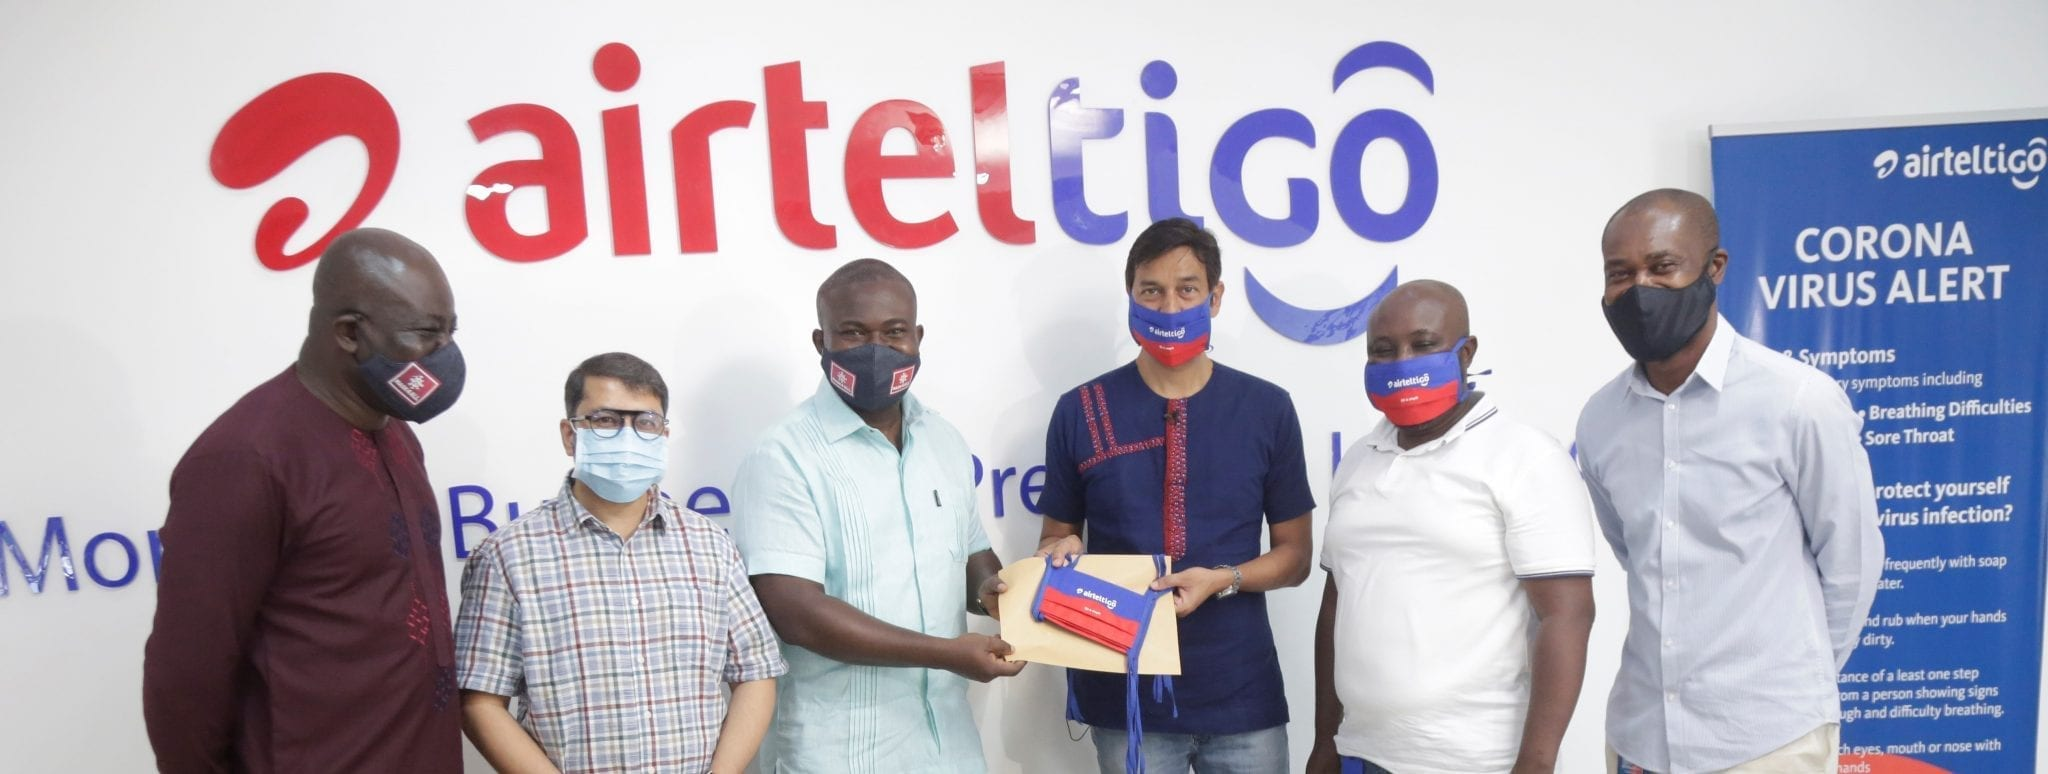 AirtelTigo supports 'Mask4All' campaign with 5,000 pieces of face masks for the underprivileged